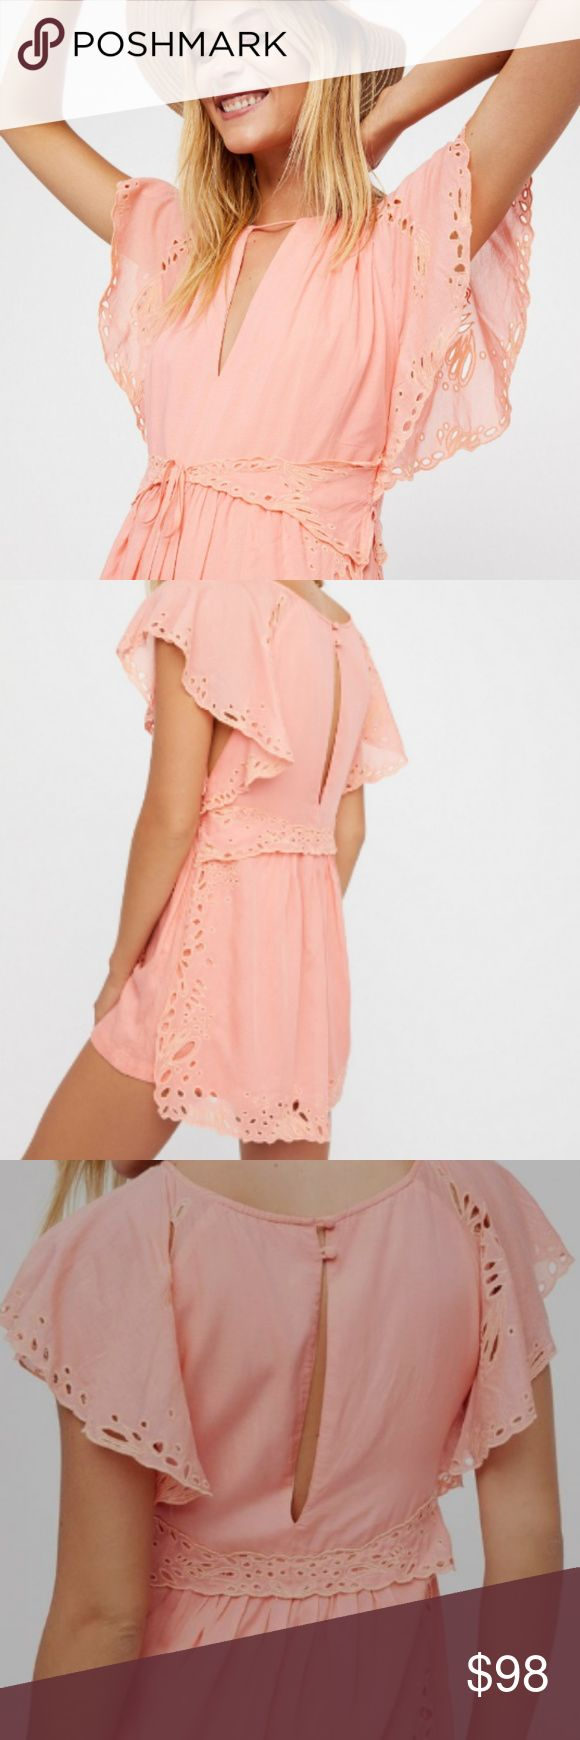 NWT Free People Sahara Romper in Peach Sold out super flirty and adorable femme lightweight romper featuring a tonal overlay with eyelet trim. I ordered this off the Free People website and the tag was ripped in half when I got it in case anyone's wondering. Never worn! :) Reasonable offers welcomed!   V-neckline Flutter sleeves Adjustable tie front Slit detailing in back with button closures Hidden side zip closure Free People Pants Jumpsuits & Rompers